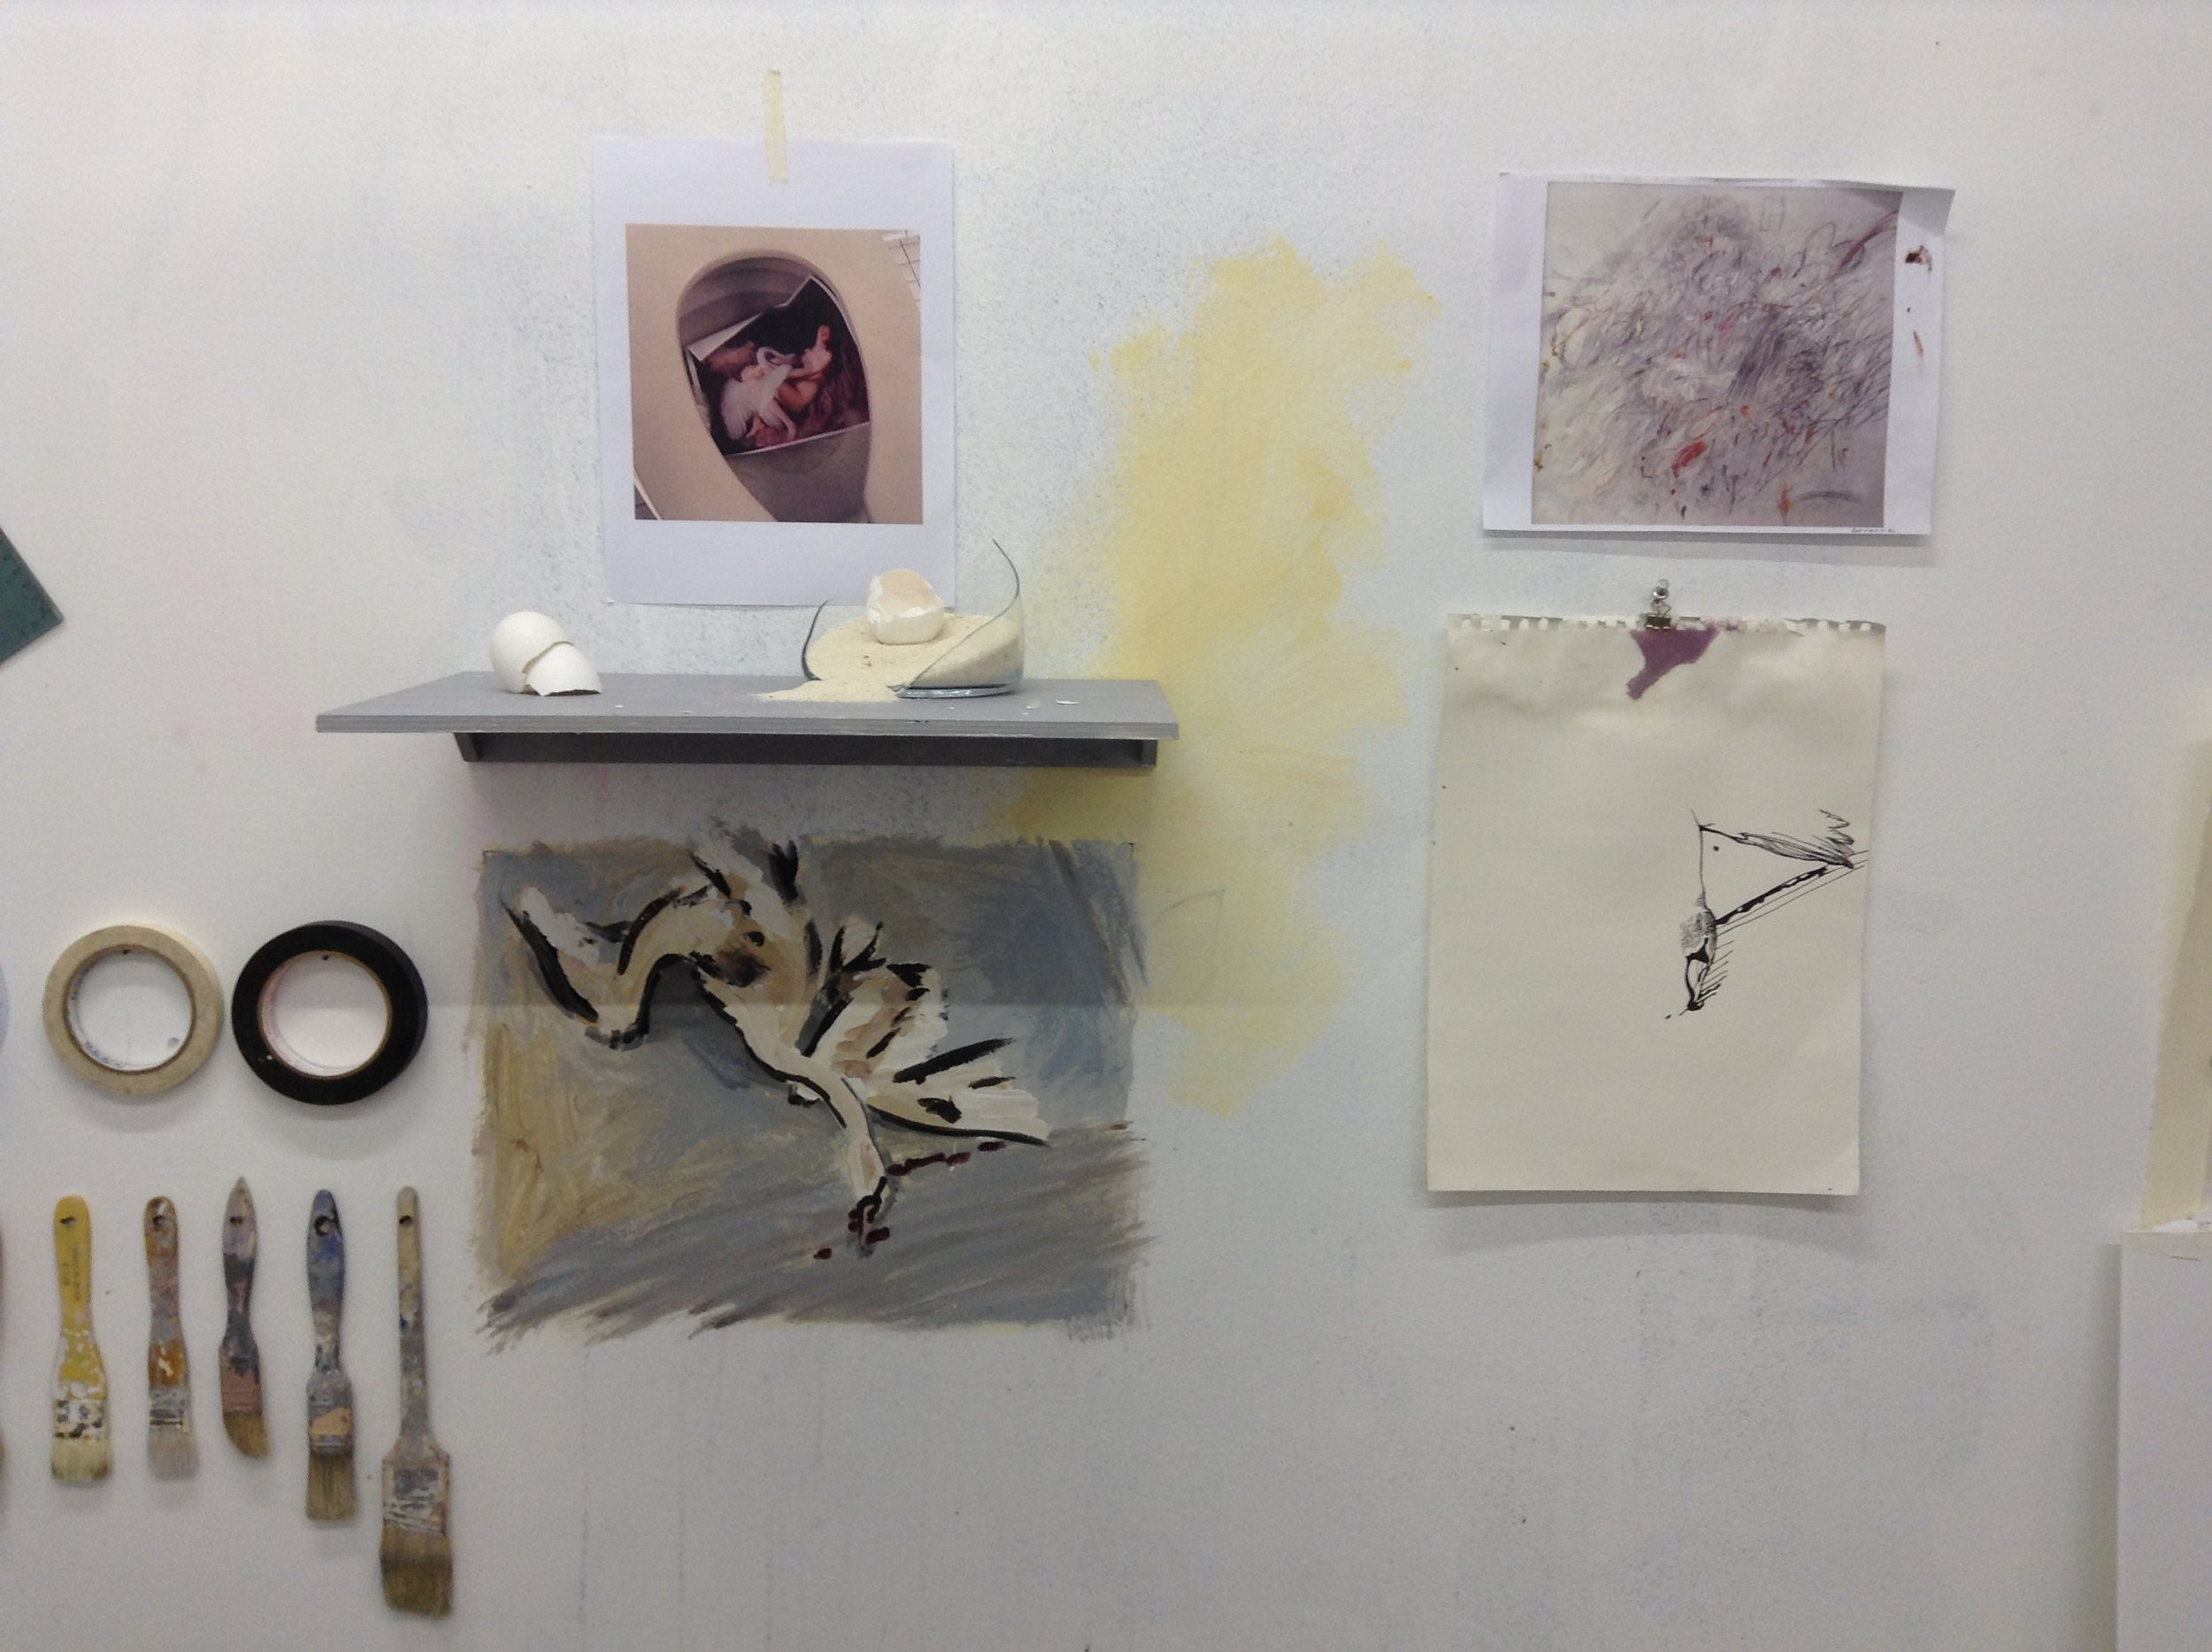 work in progress in studio / during research and pre-production